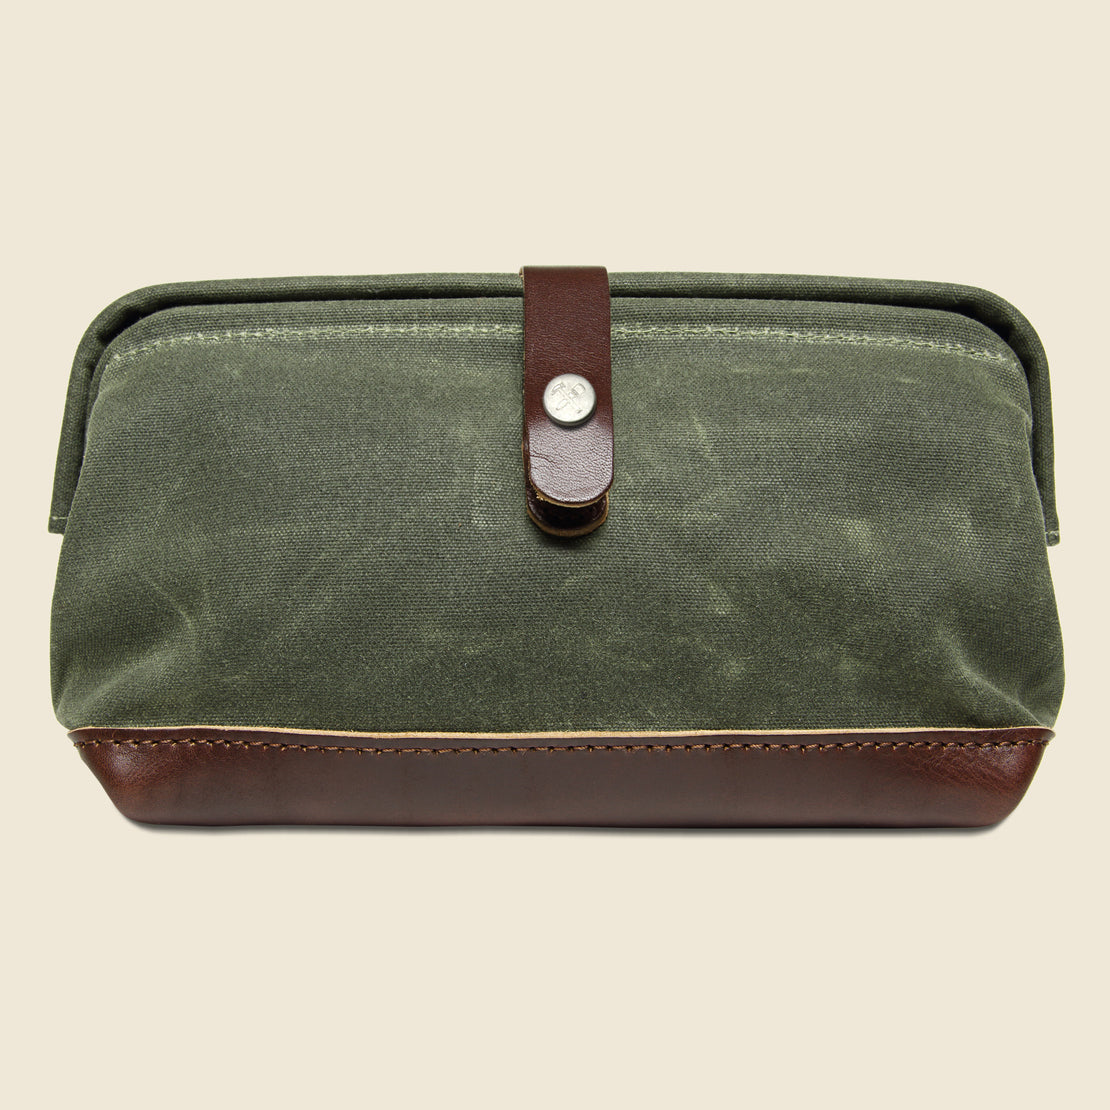 BILLYKIRK No. 257 Snap Dopp Kit - Olive/Brown